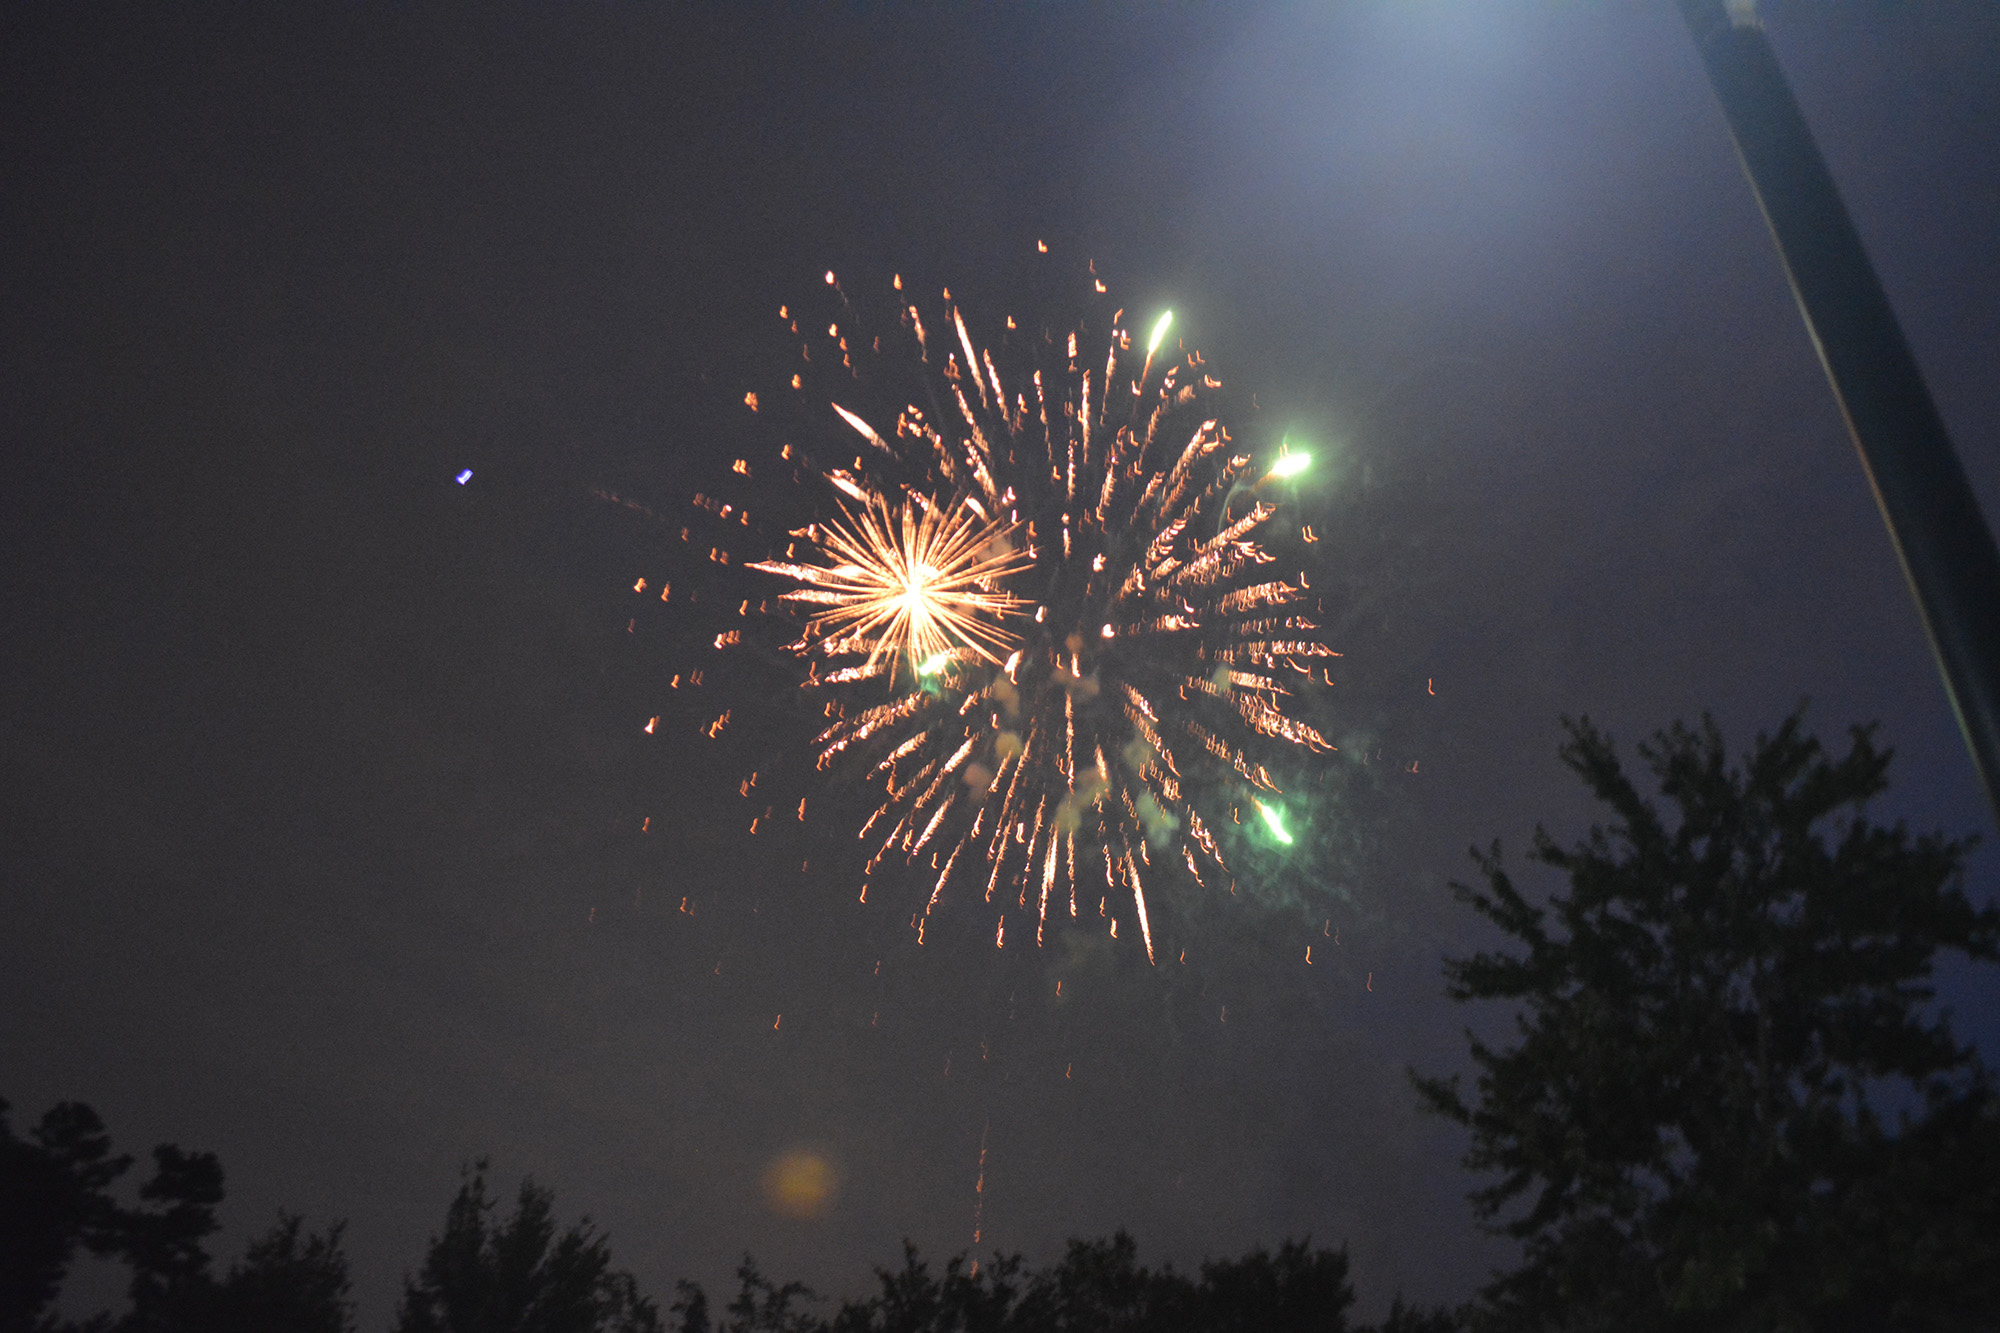 JCFD reminds residents of fireworks law, safety tips